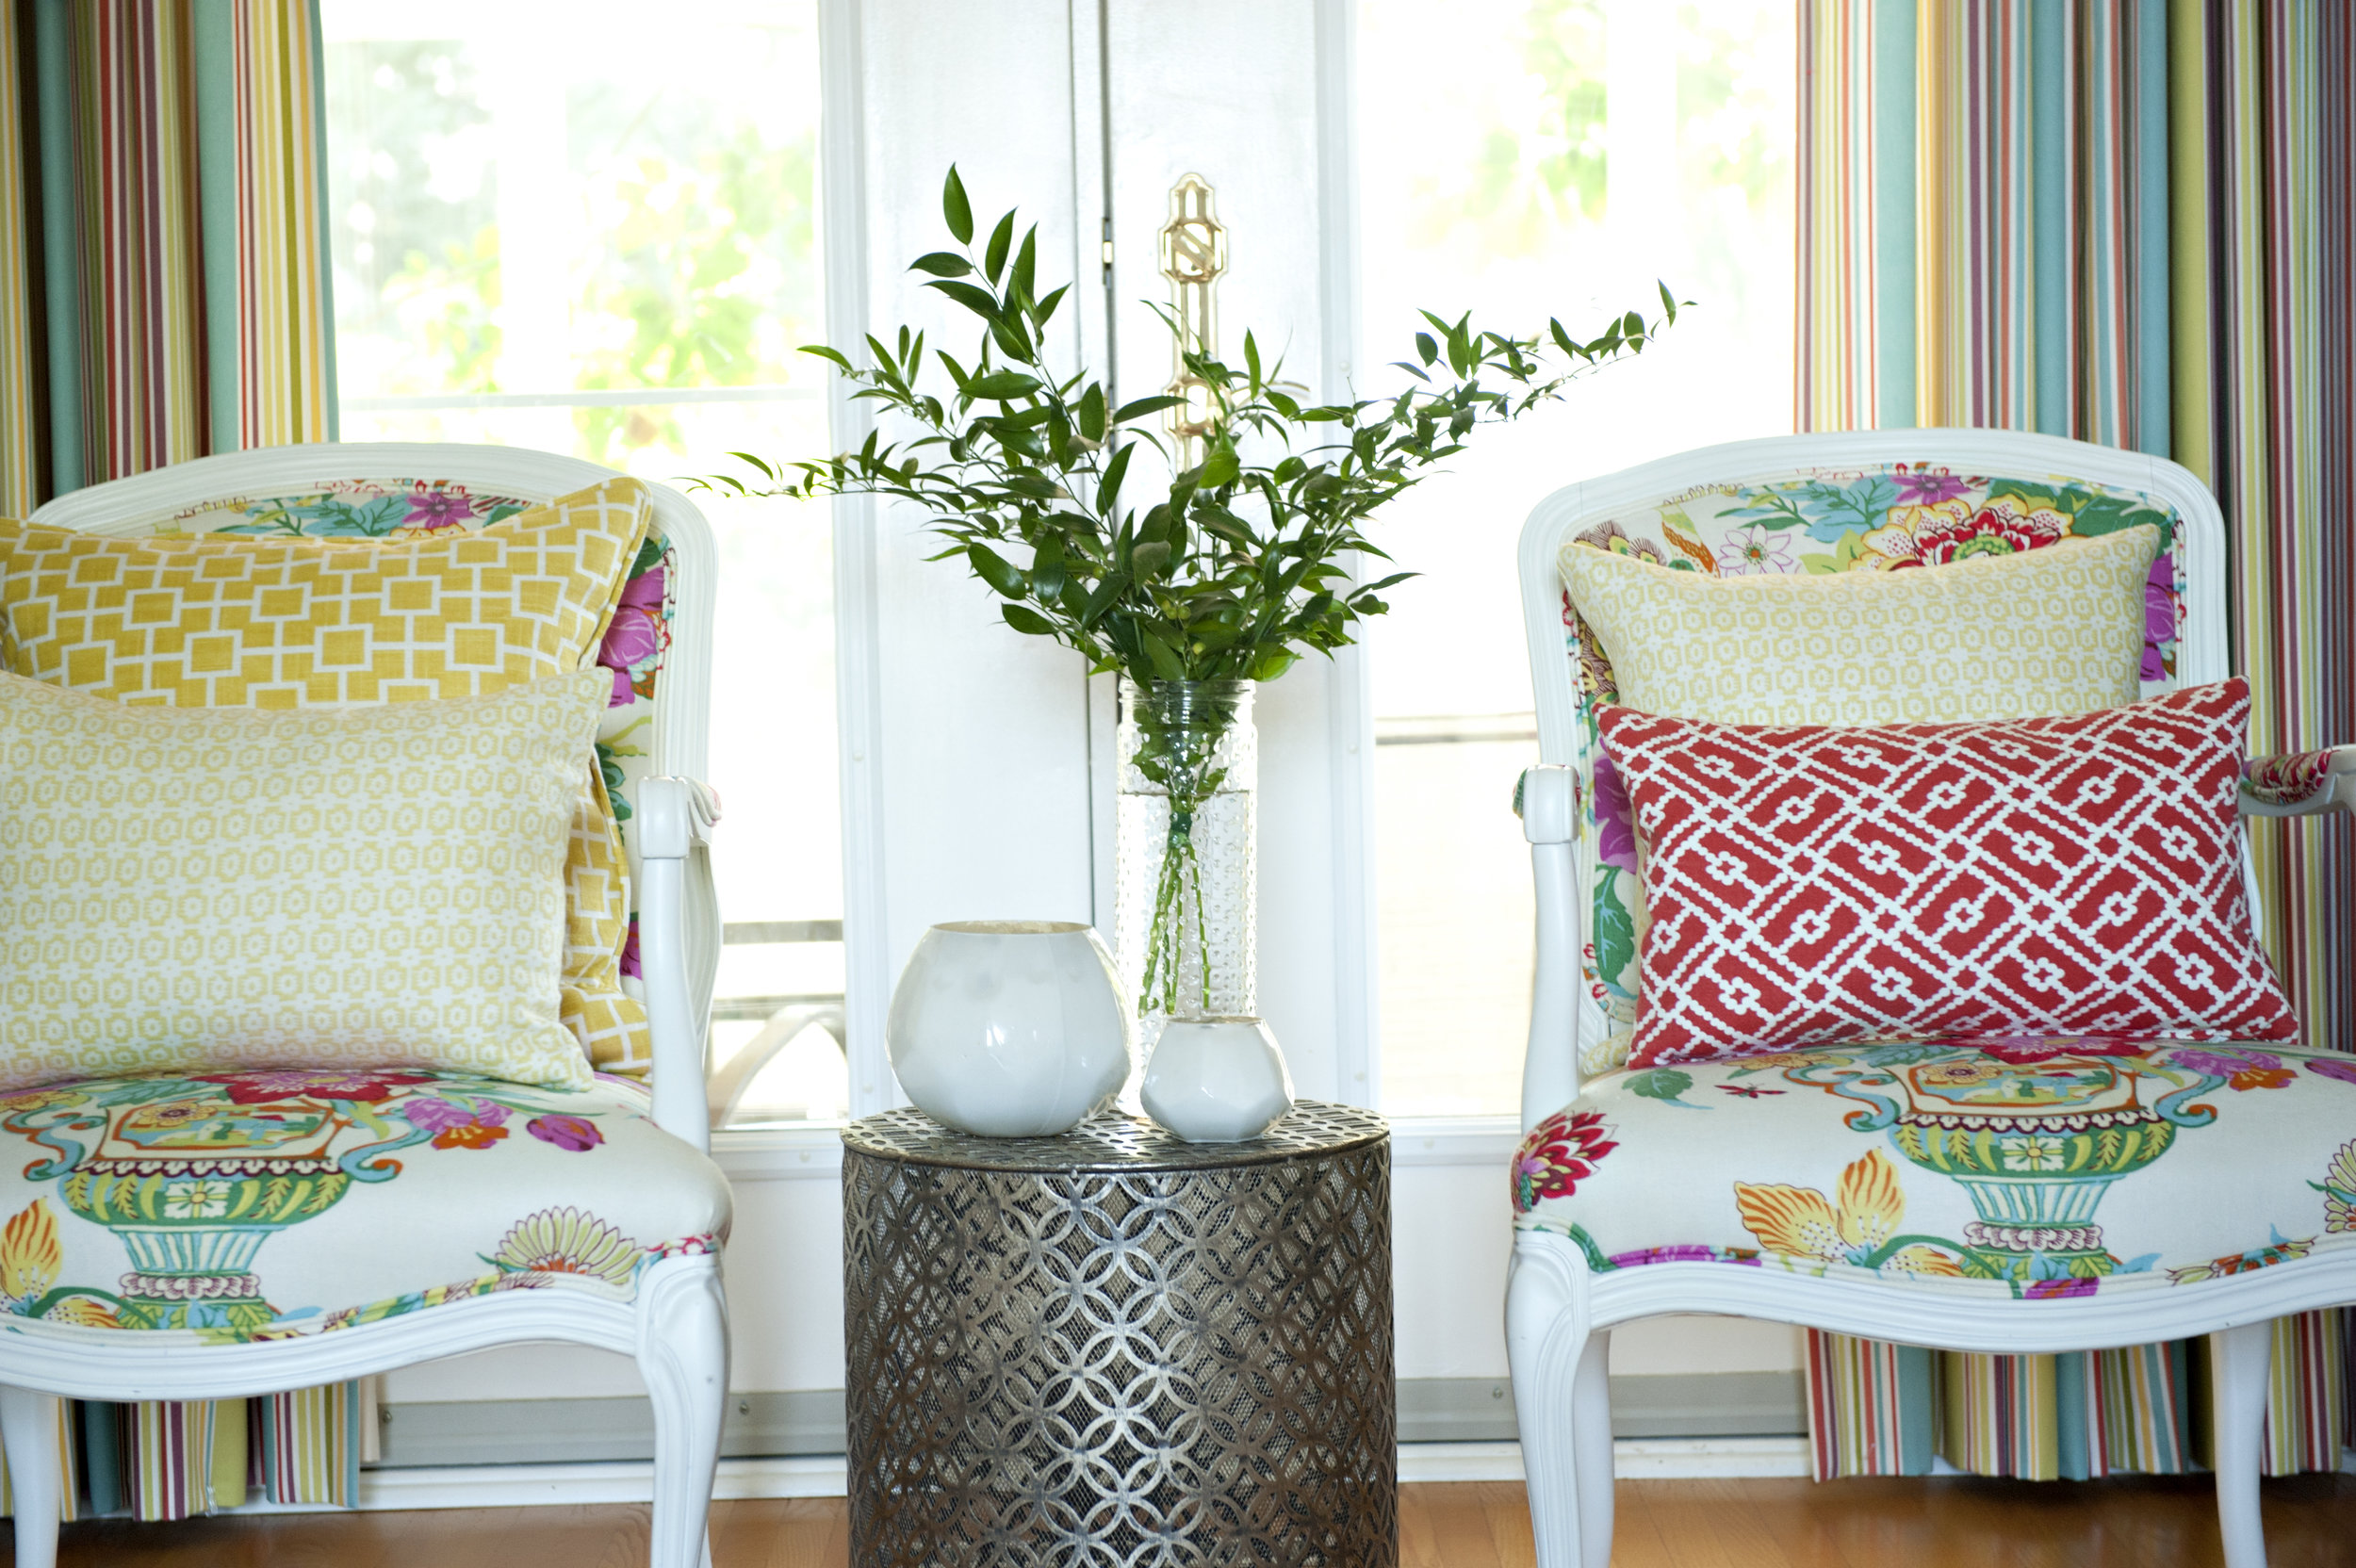 Candace-Plotz-Irving-Two-Chairs-Yellow-Red-Floral